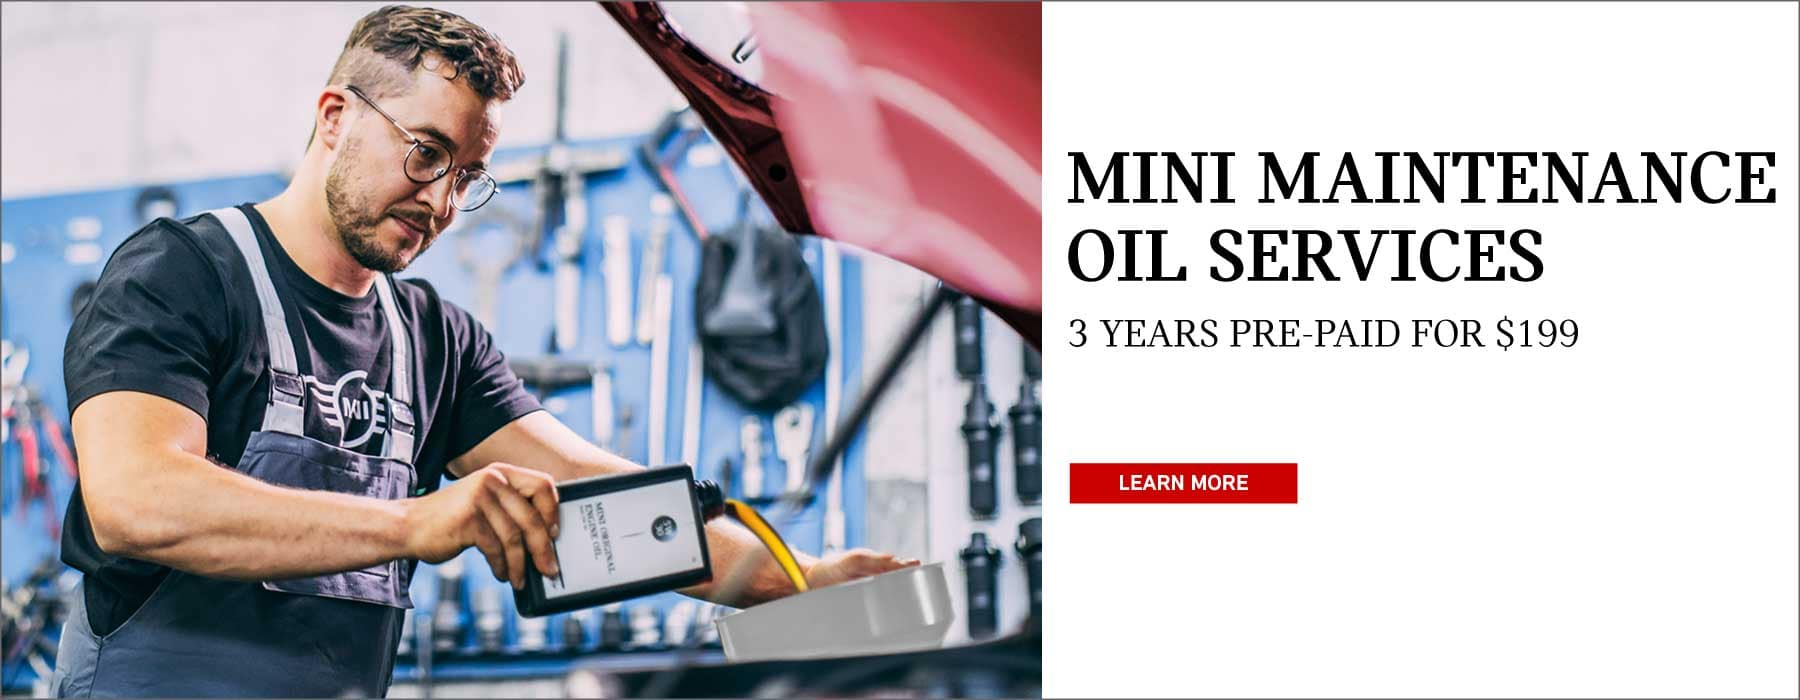 MINI Maintenance Oil Services. 3 years pre-paid for $199. Click to learn more. Picture shows a MINI service advisor adding oil to a MINI vehicle in a garage